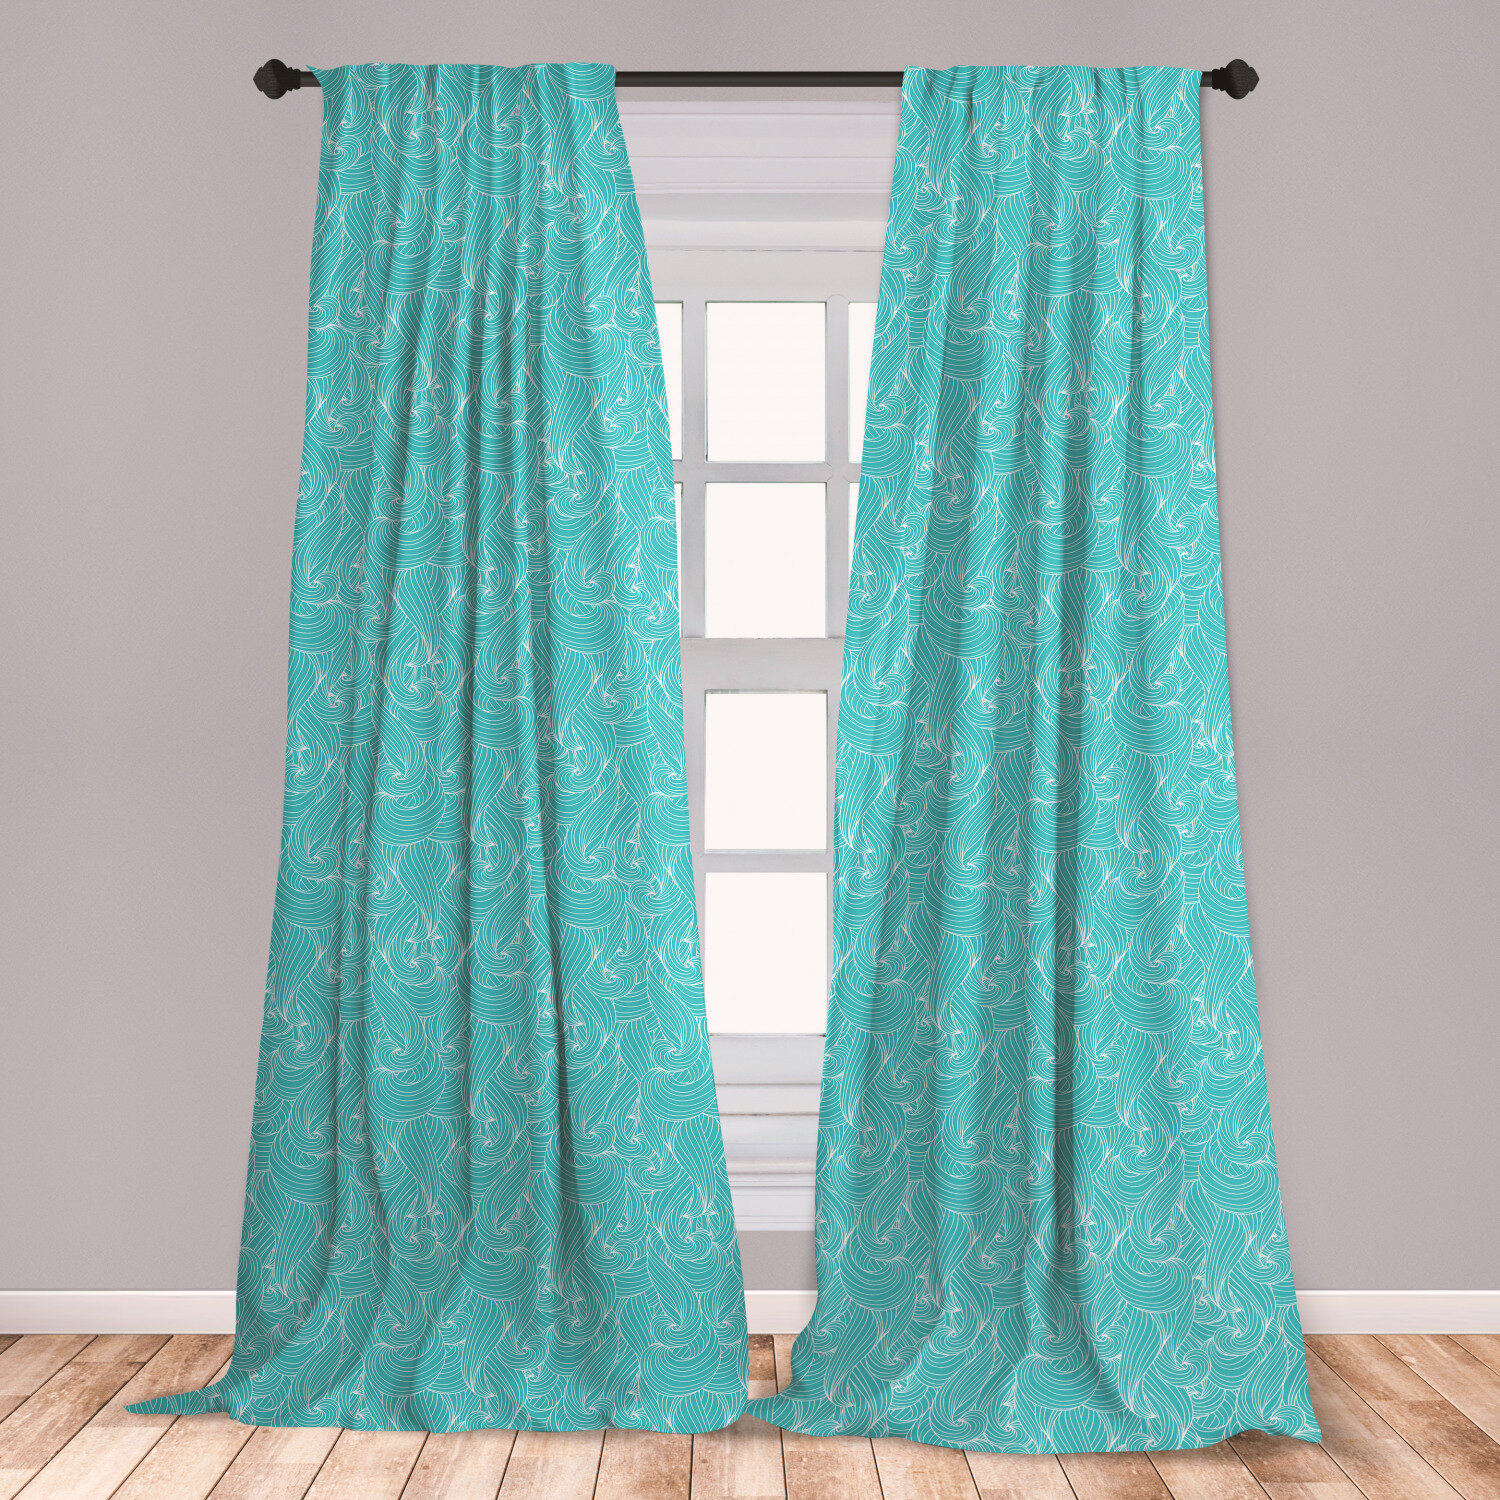 Turquoise Blackout Outdoor Patio Curtain Liner Retro Vintage 60s 50s Inspired Geometric Polka Dots Romantic Art Print Waterproof Fabric White and Light Blue W54 x L63 Inch